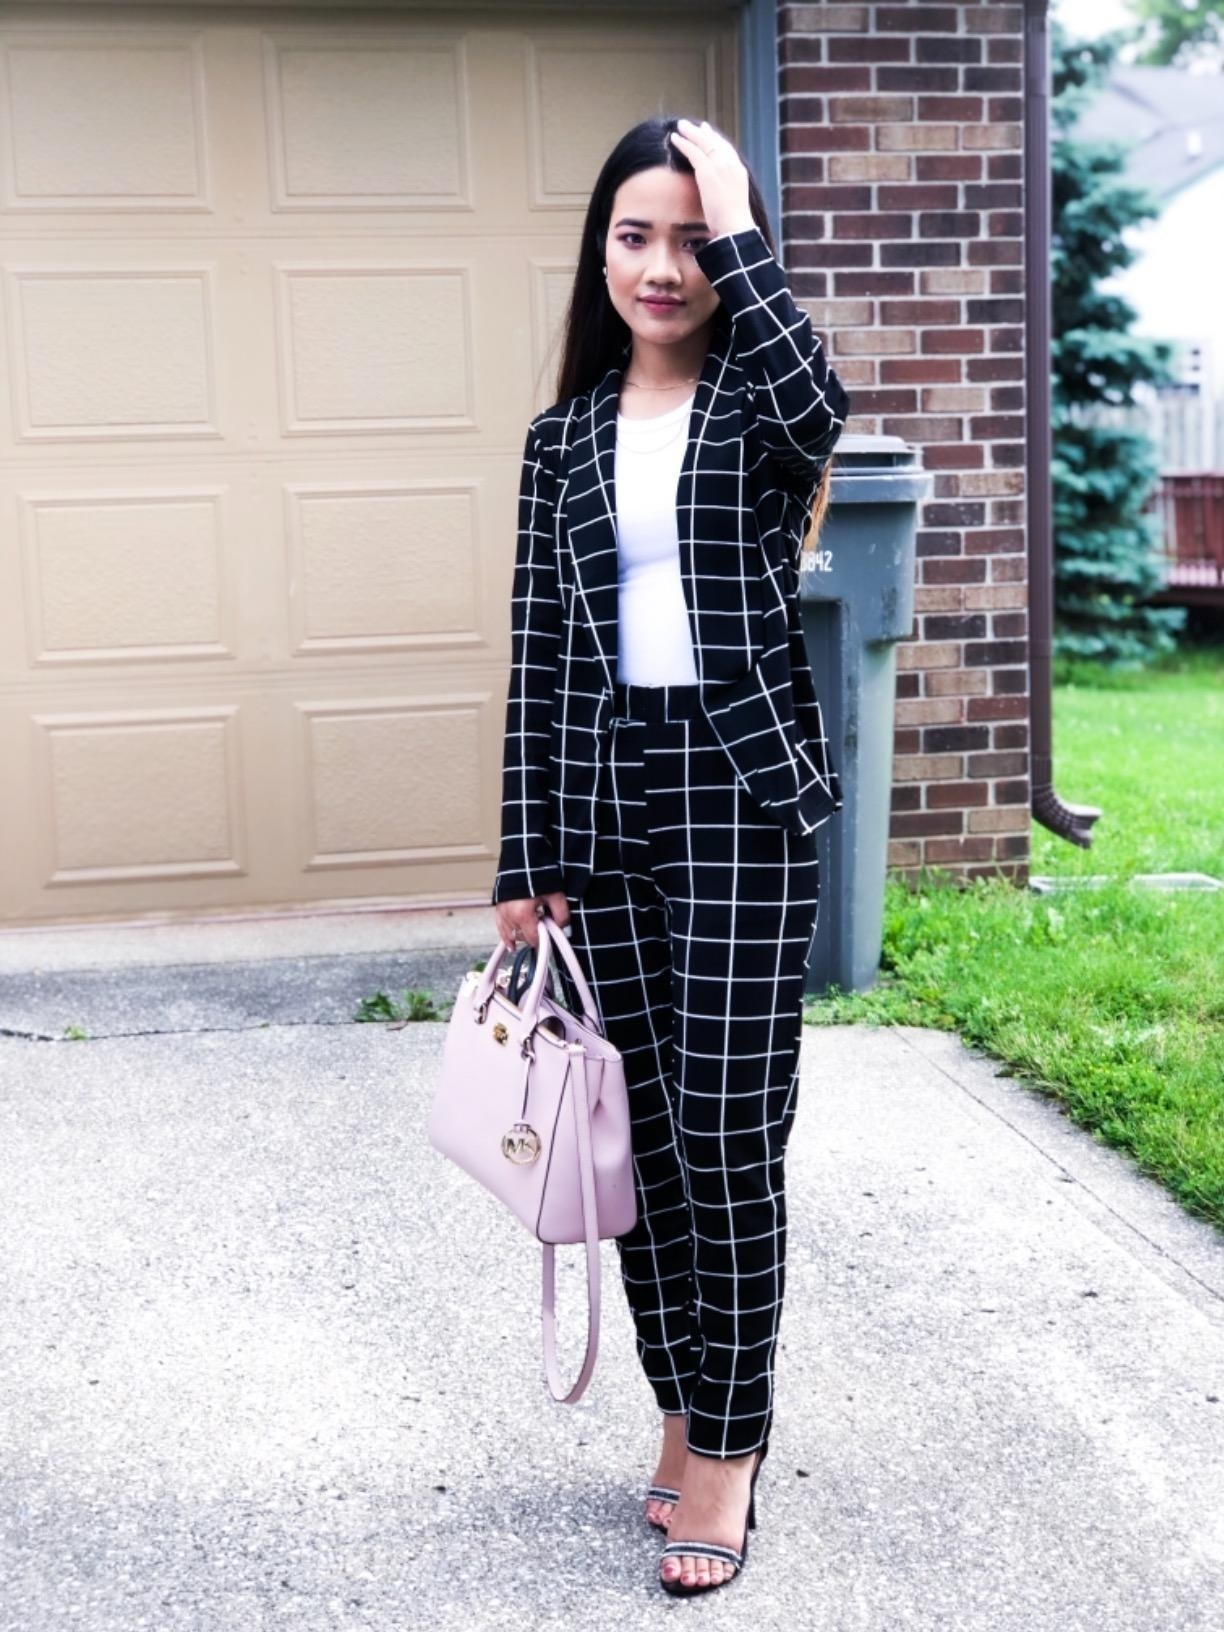 A reviewer in the black suit with white grid pattern